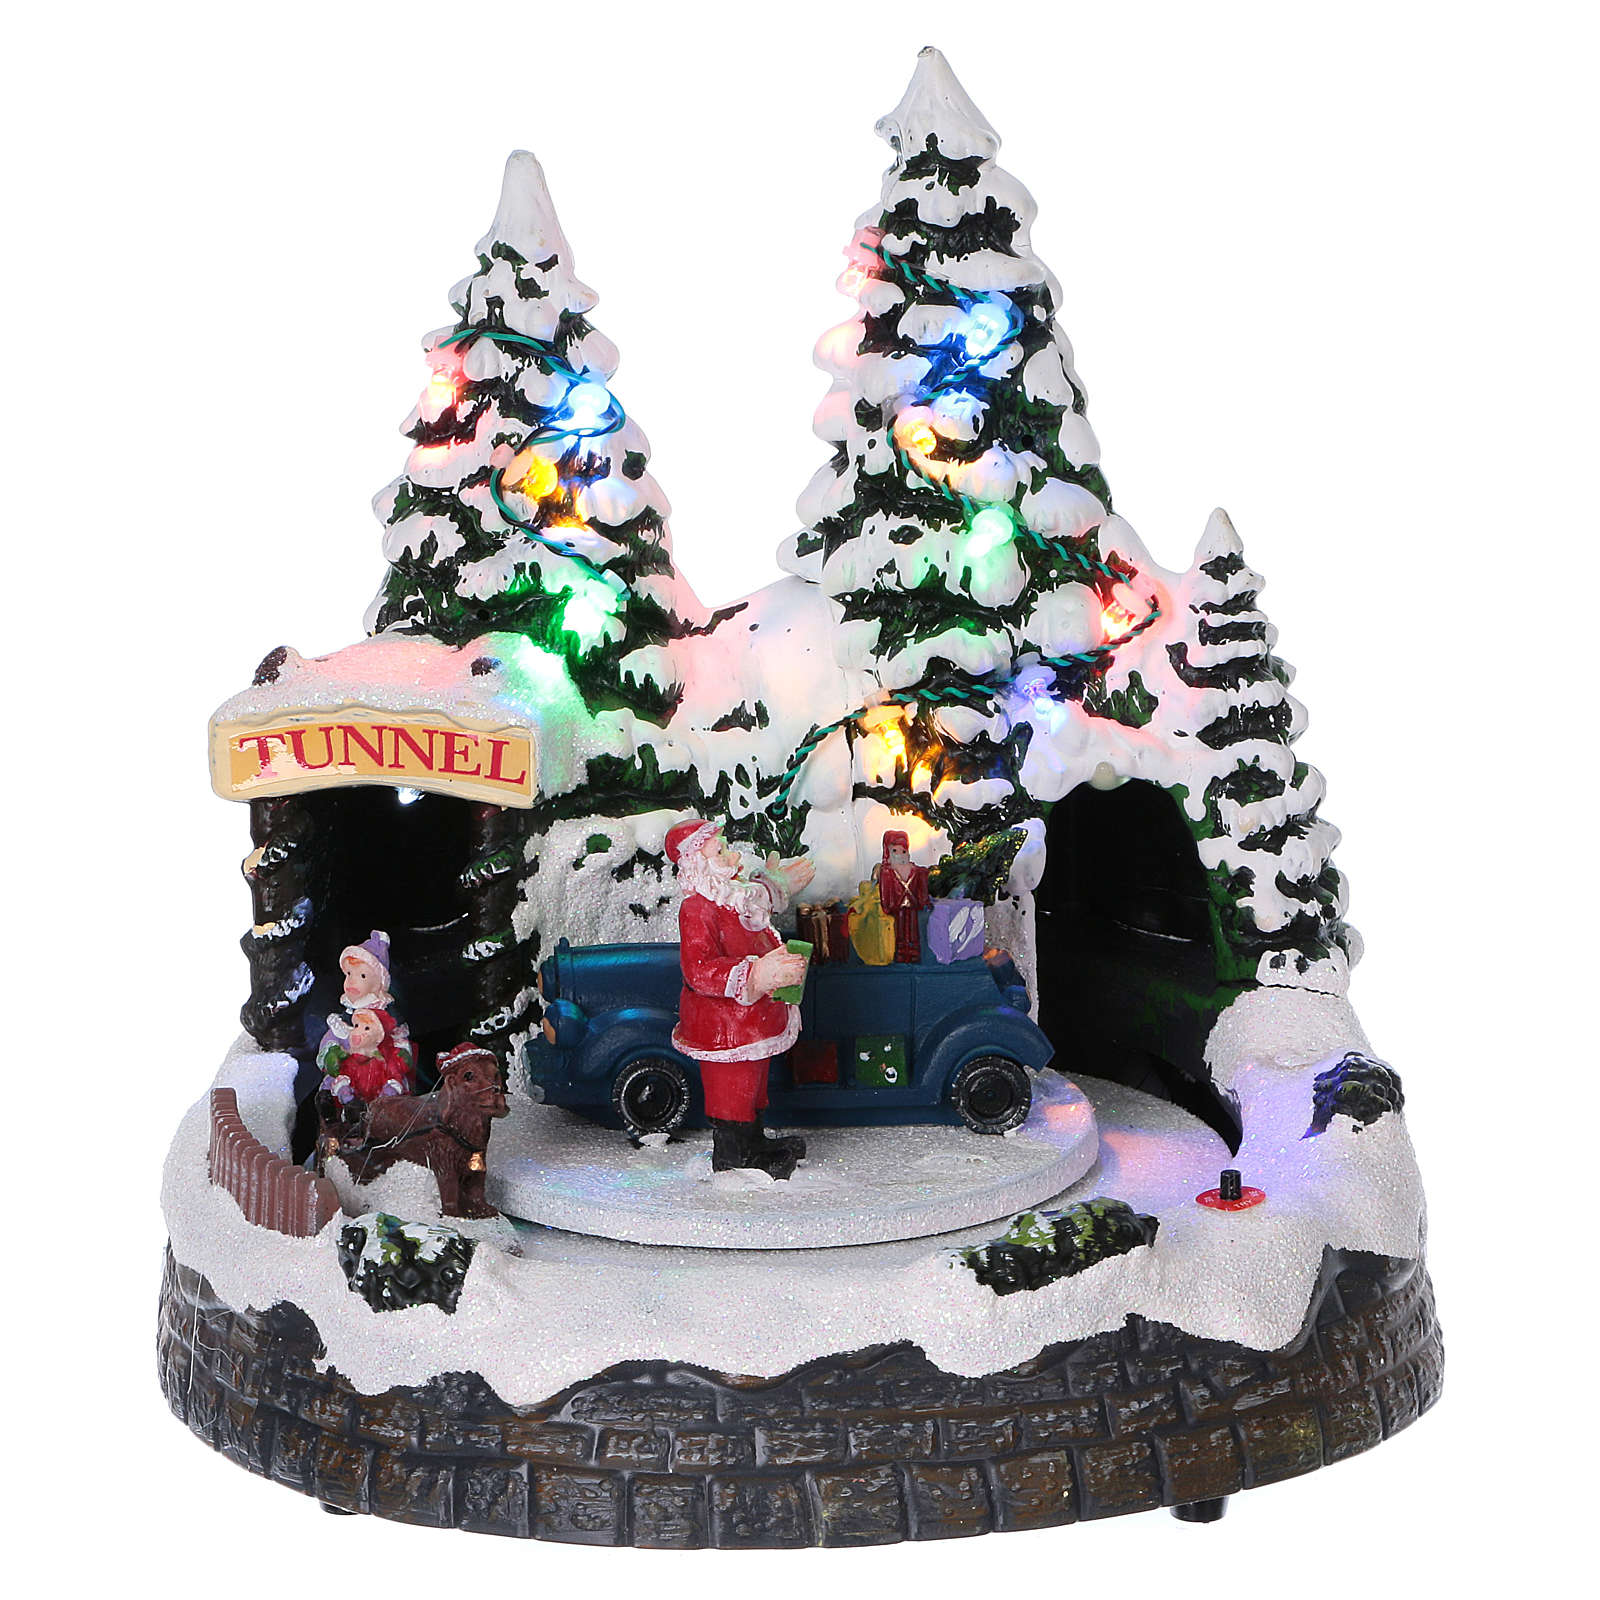 animated peppermint christmas ornaments a8b1b8052c0d48f2a0db97f80068bce6 christmas village scene moving sleigh tunnel and santa claus 20x20x18 cm 3 - Moving Christmas Decorations